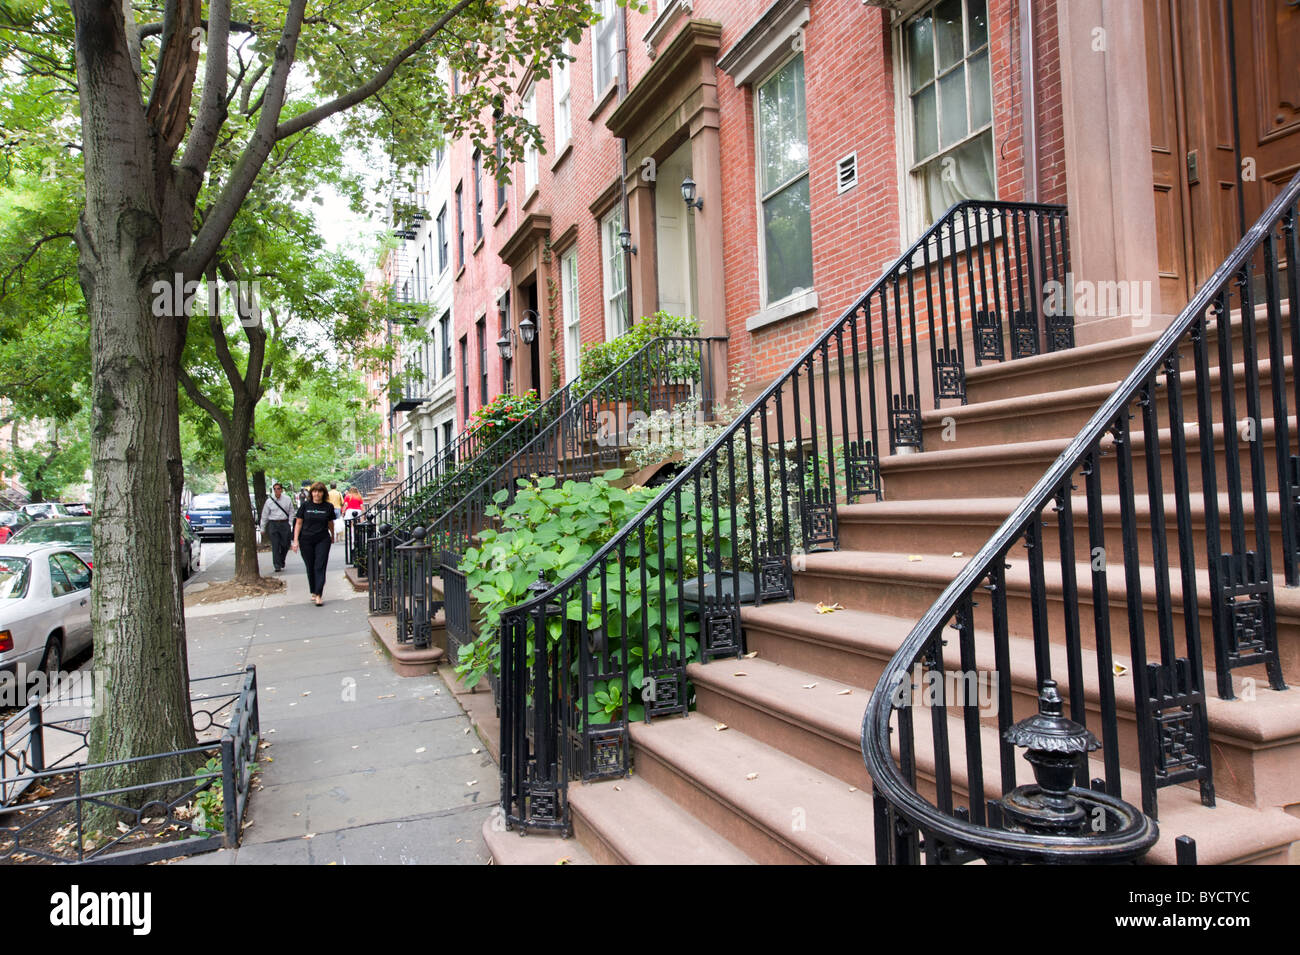 Residential street in Chelsea, New York City, America, USA - Stock Image